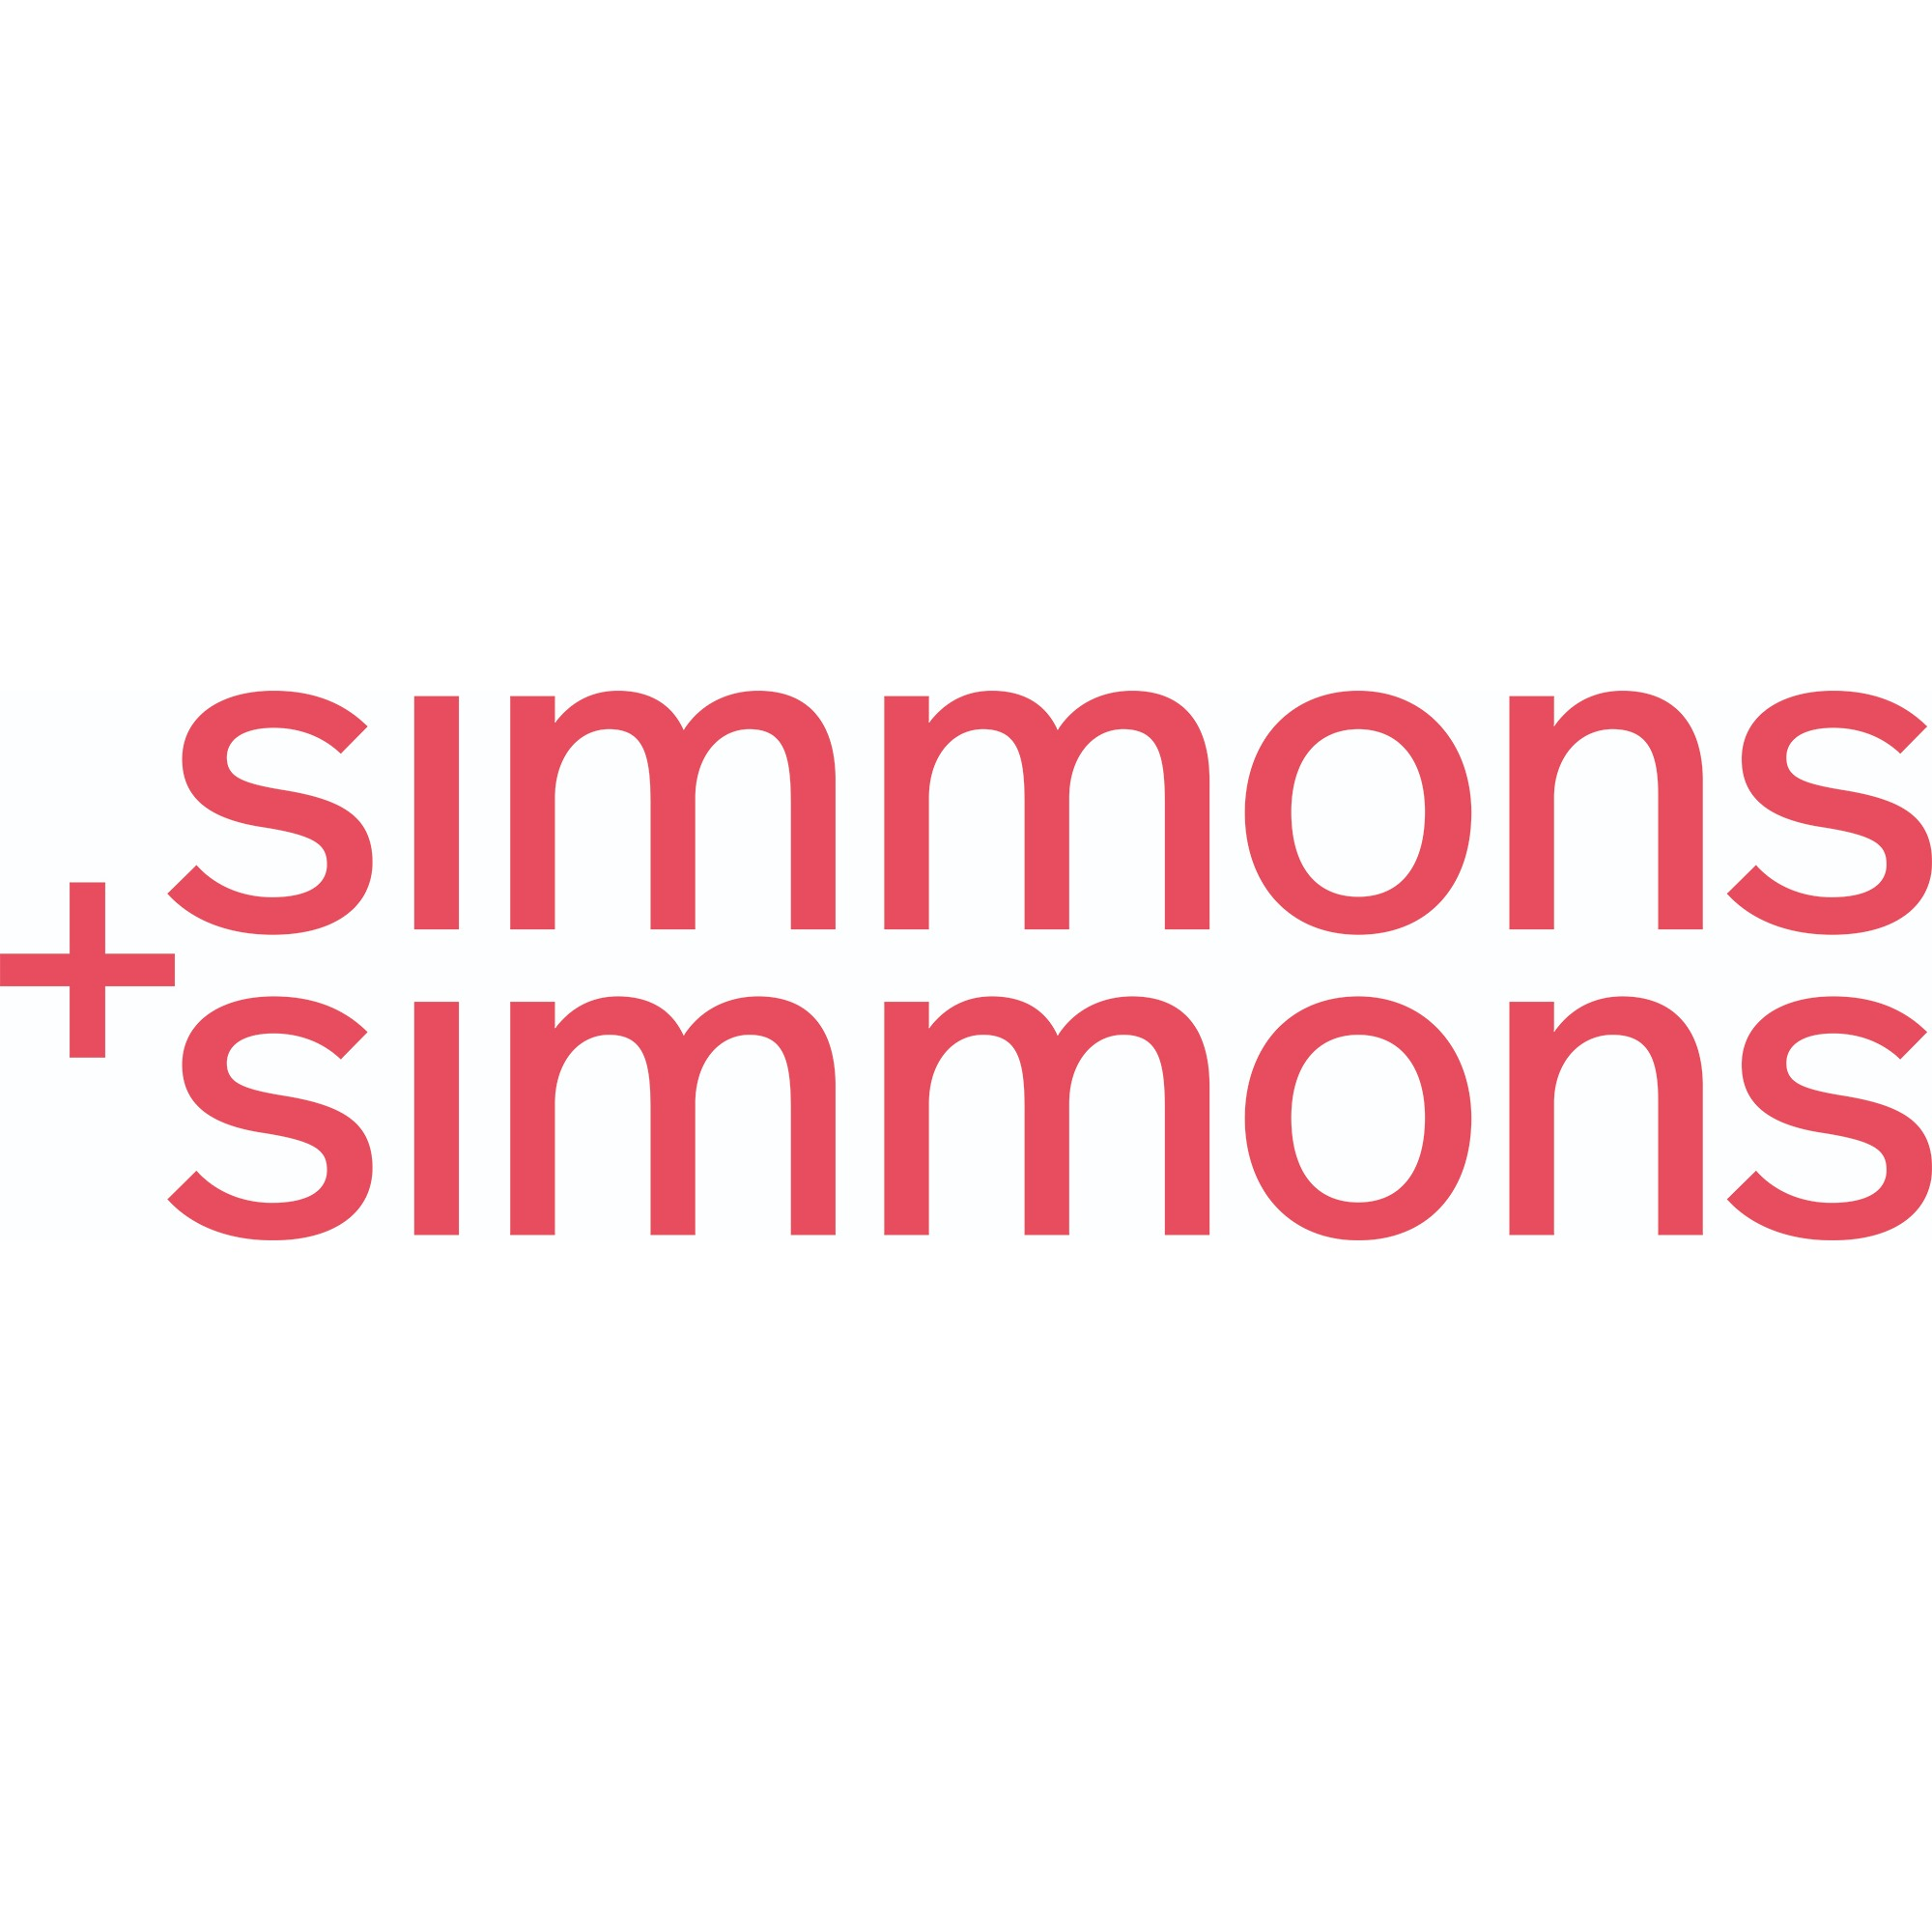 the Simmons & Simmons logo.